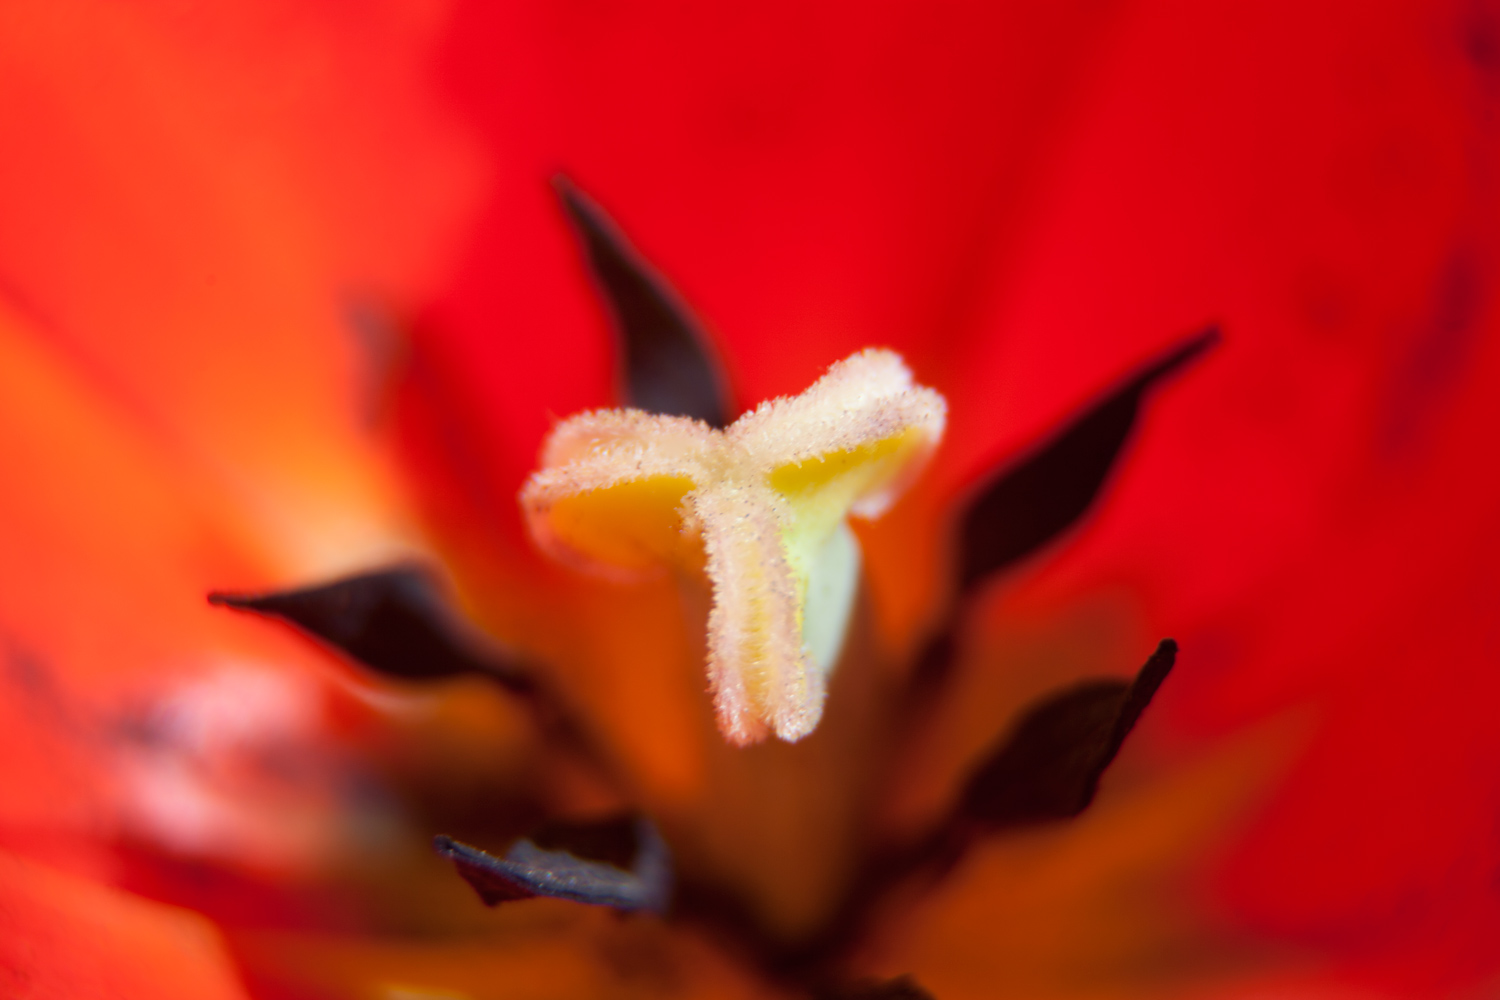 4 - 5 Tips for Photographing Flowers with Impact